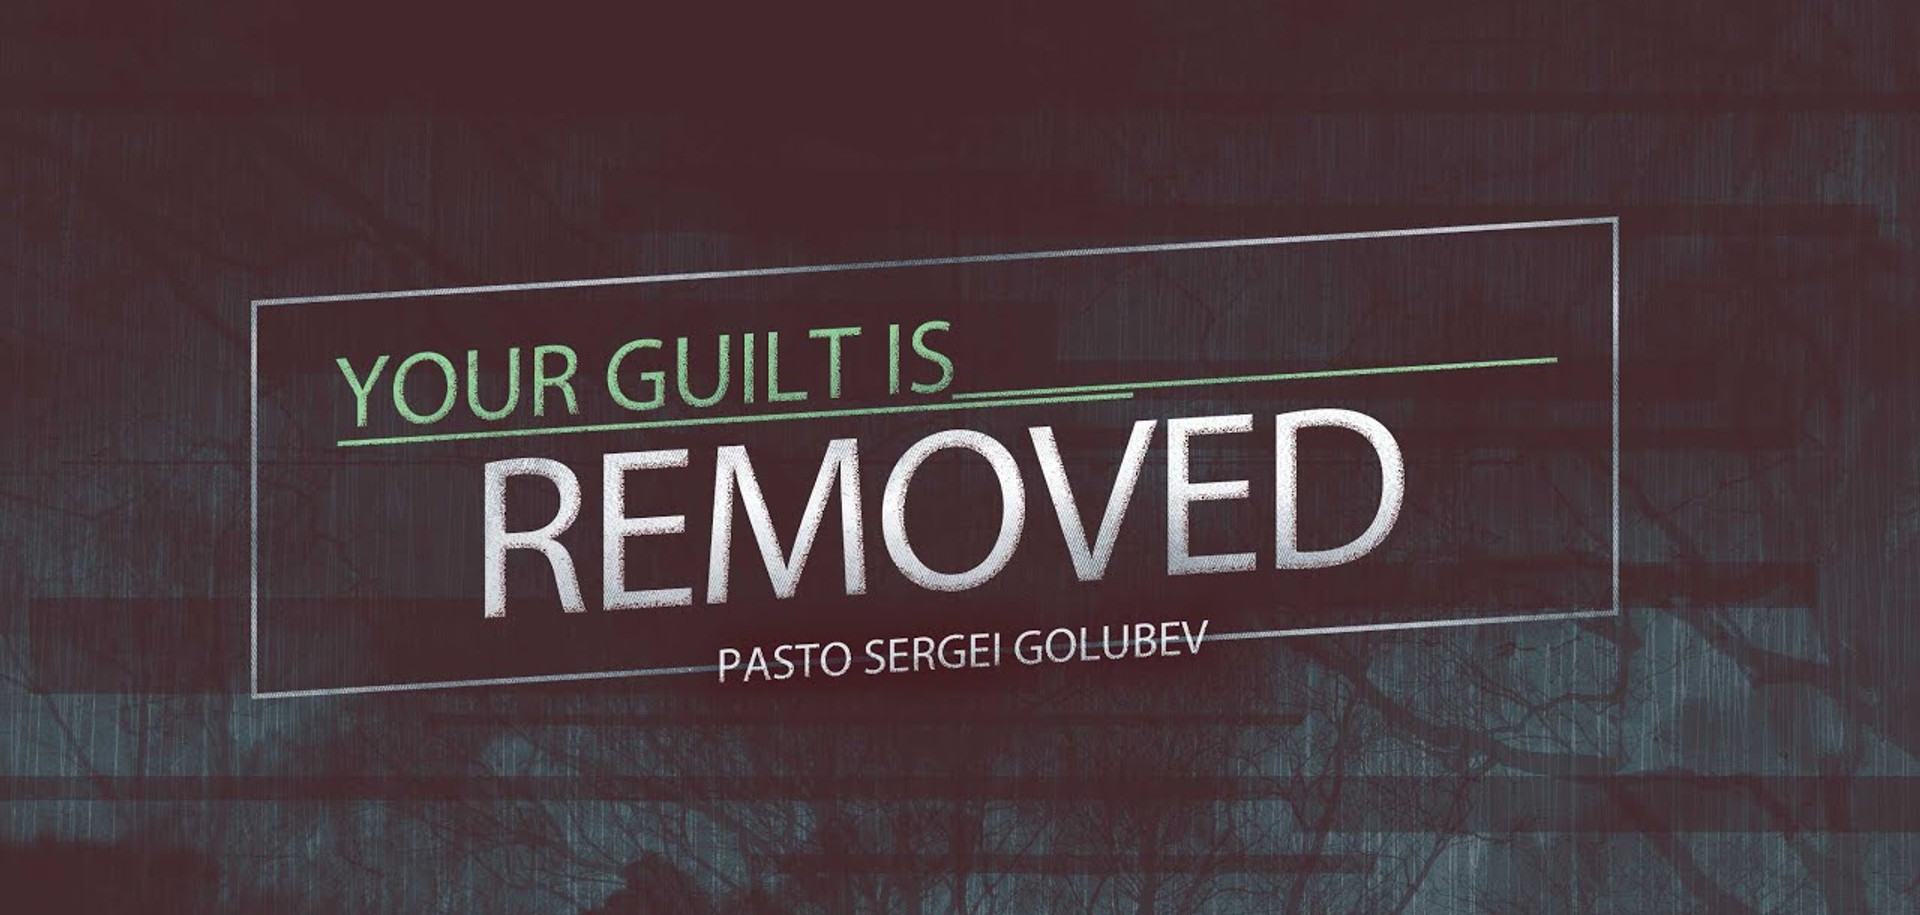 Your Guilt is Removed